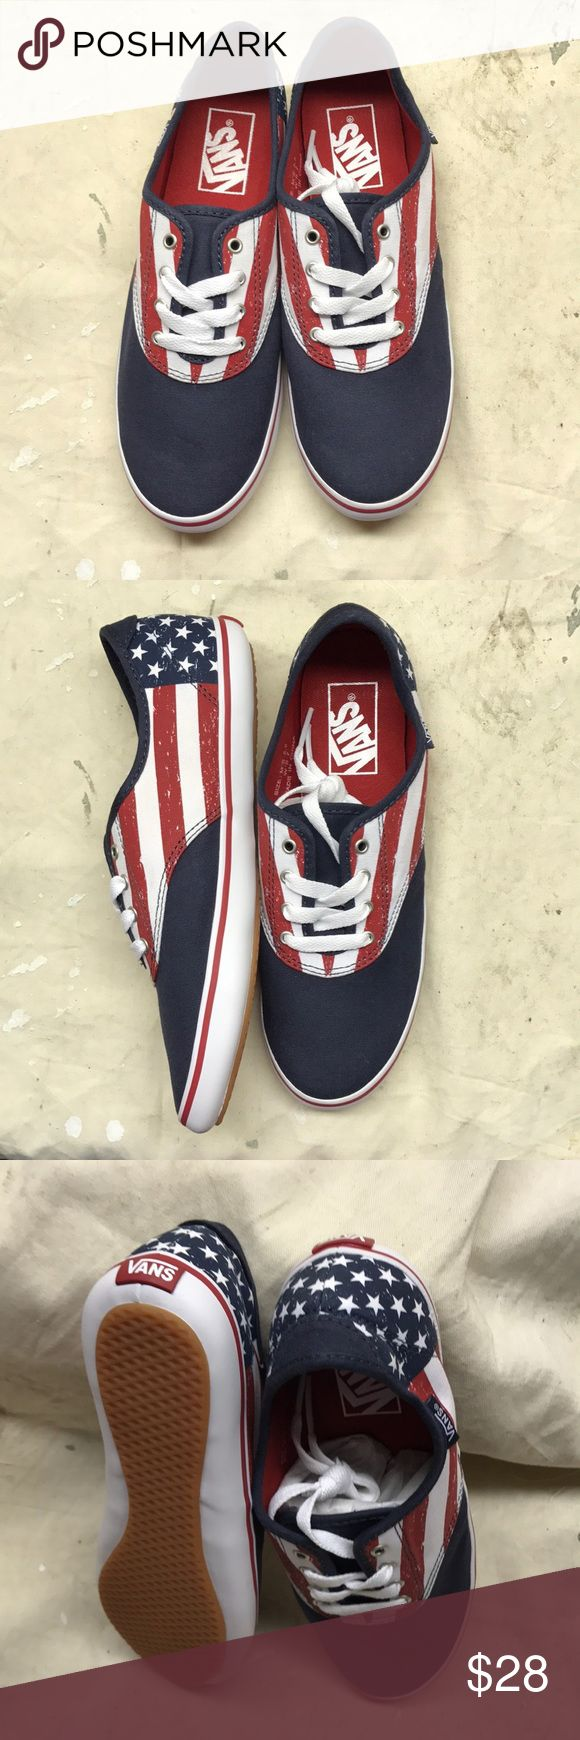 Women's Vans lo pro VANS SHOES  Huntley lo profile Stars & stripes red, white, blue Women's size 7 or men's size 5.5 New never worn, used as showroom items.  Items are as is, no tags, no box, shipping to continental US only.  Thank you and have a great day! Vans Shoes Sneakers